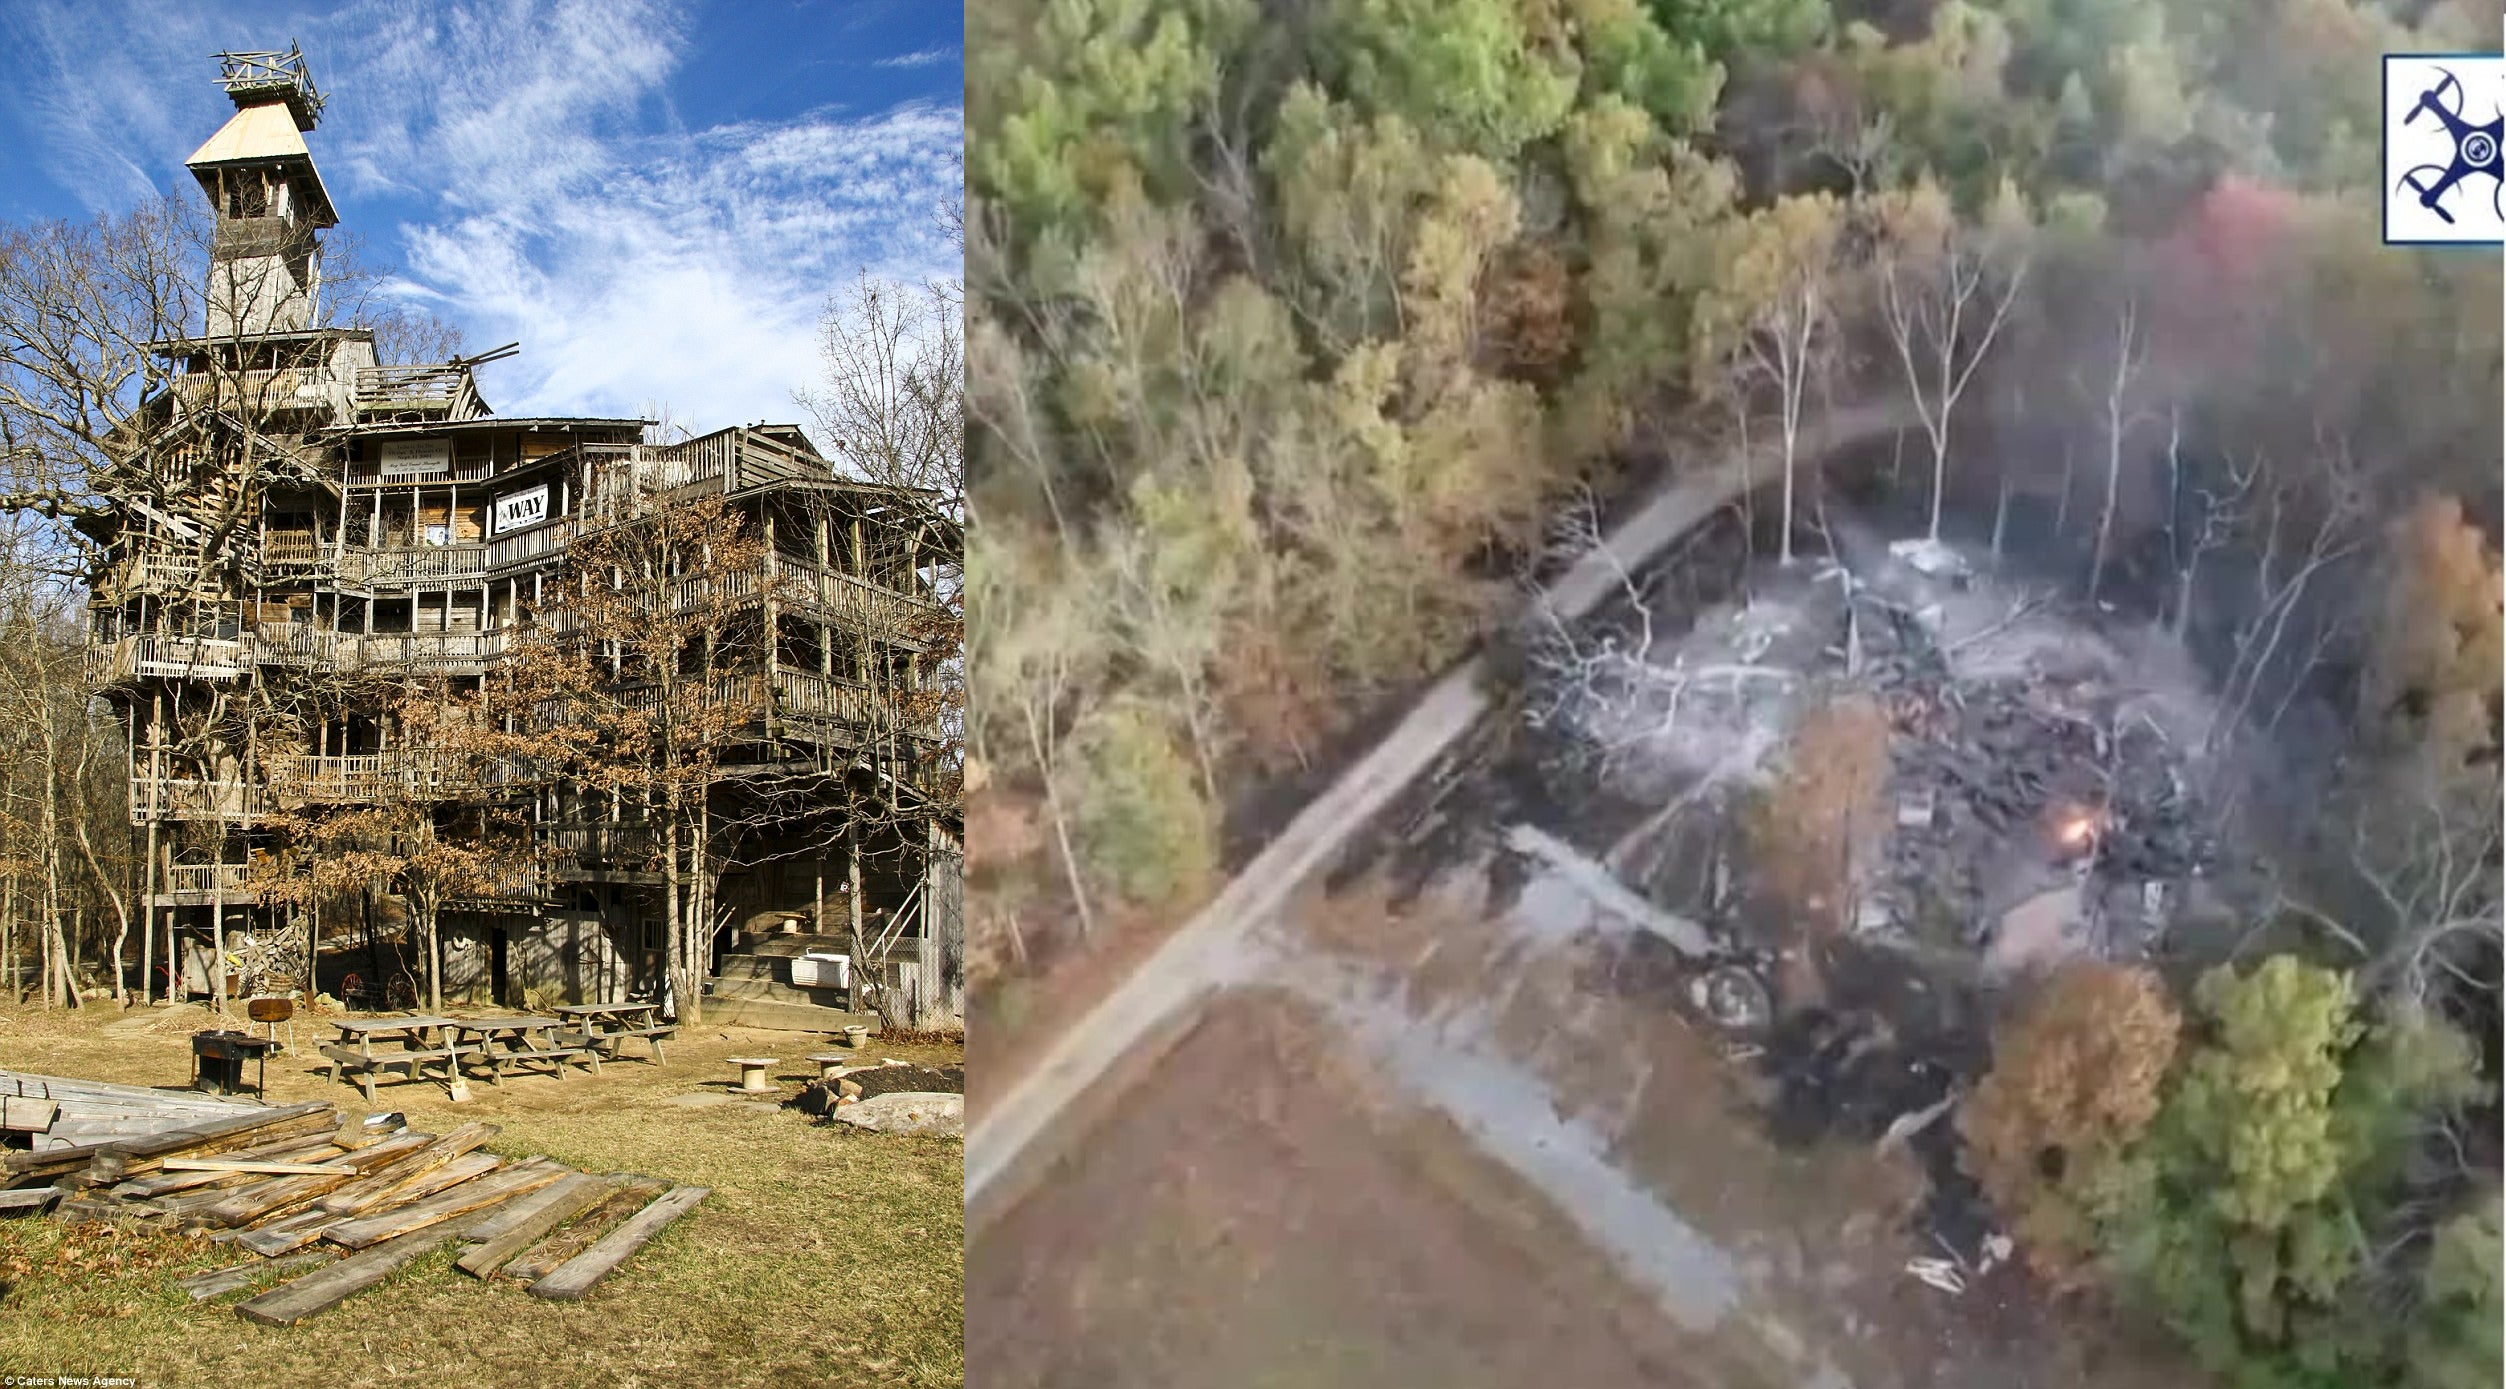 The World S Largest Tree House Which Has Been Abandoned Since 2012 Has Burned Down Abandonedporn